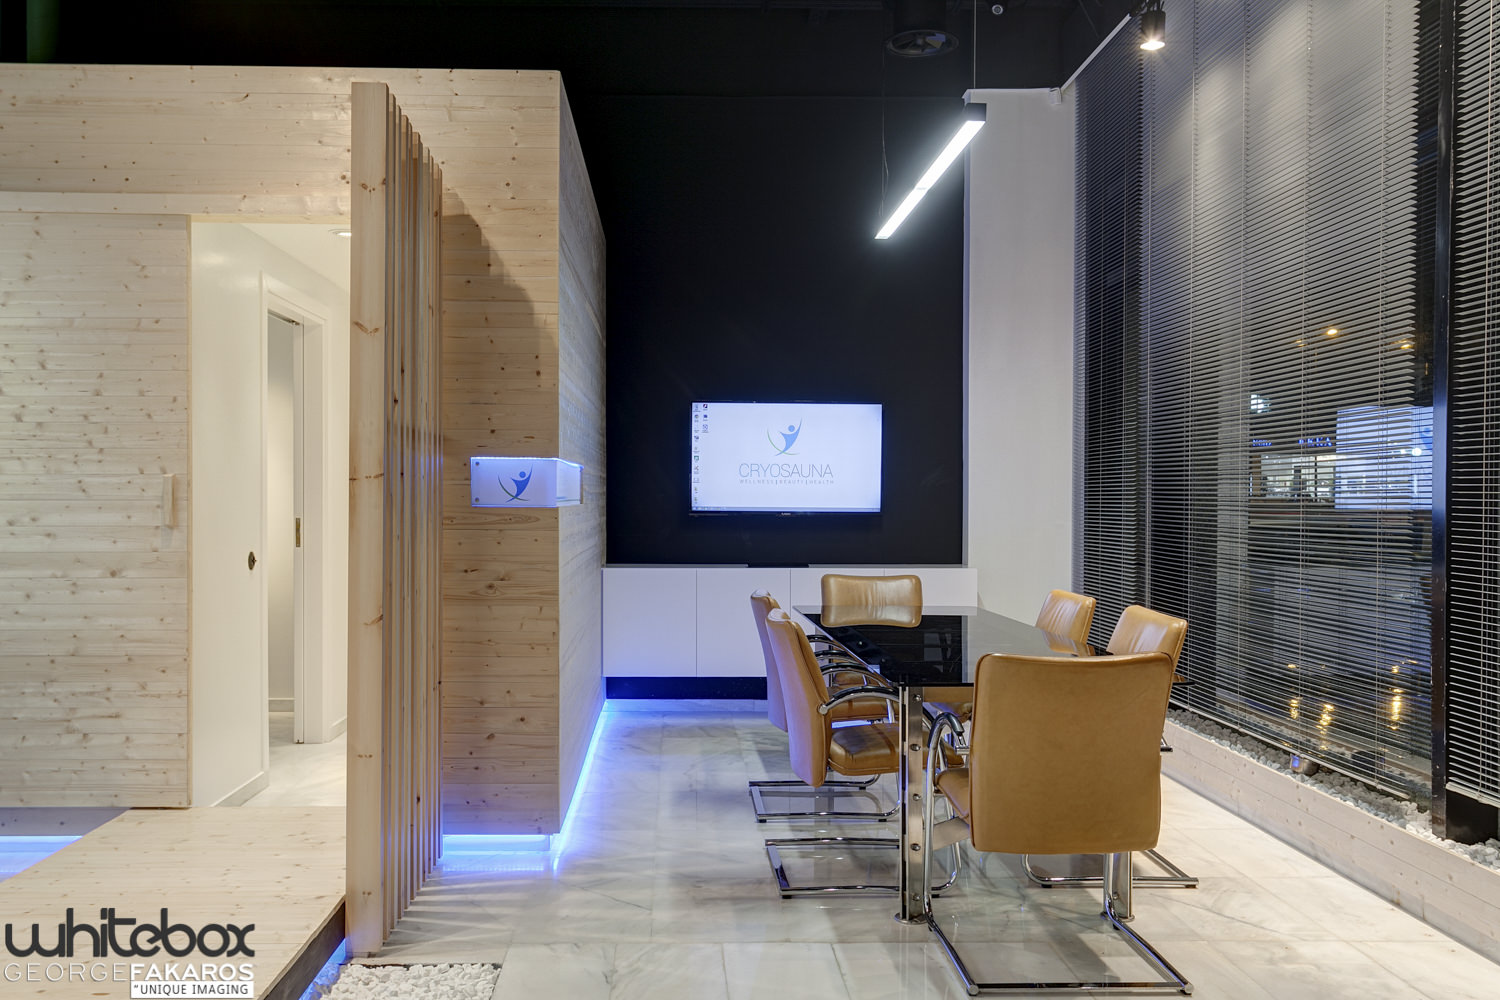 CRYOSAUNA OFFICE AND SHOWROOM